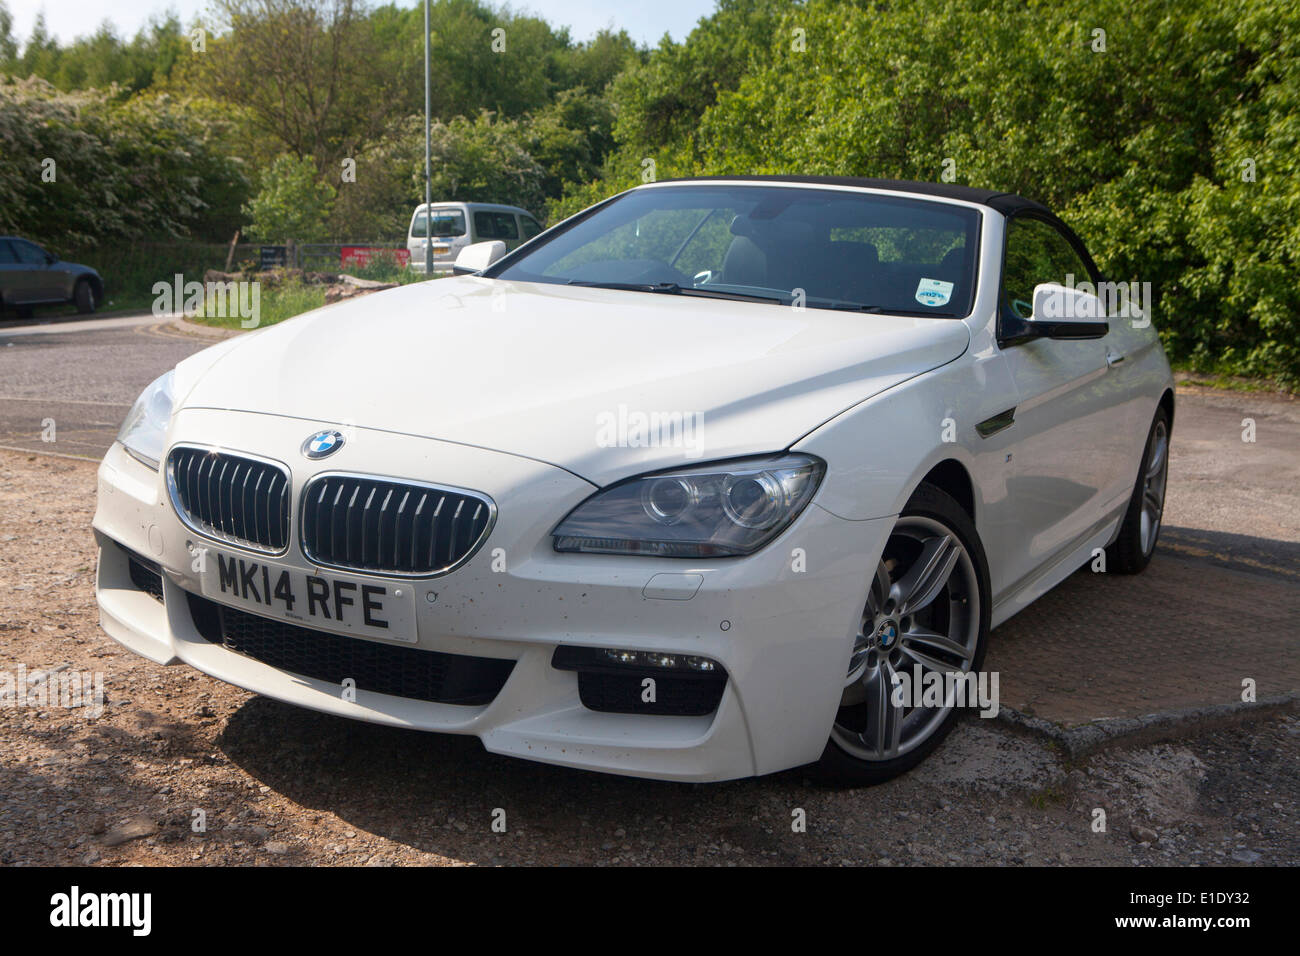 White BMW 6 Series M Sport Convertible 2 Door 640d Parked